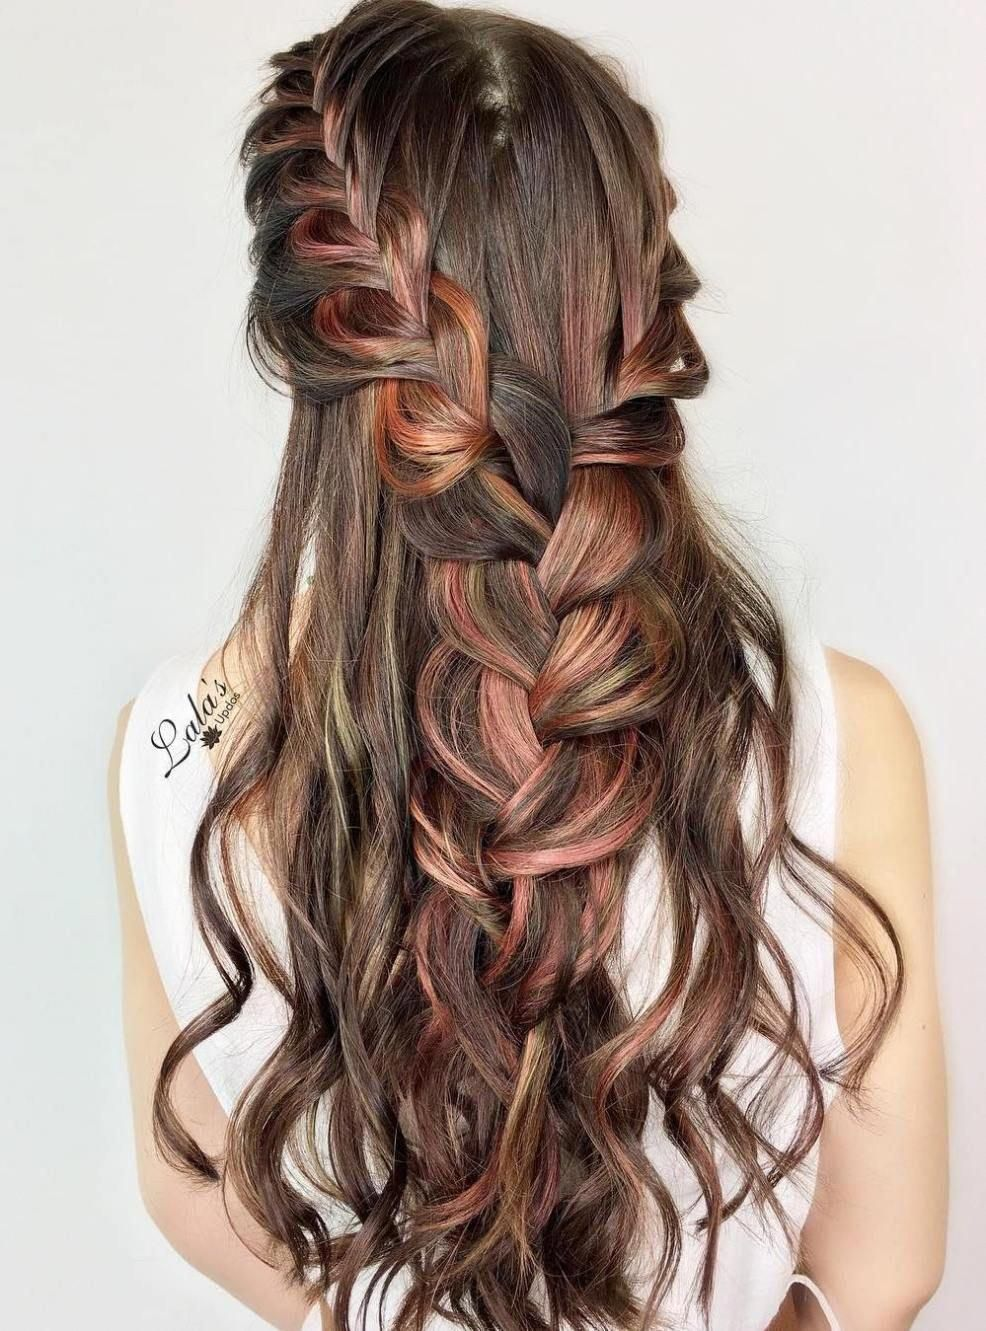 Two Braids Into One Half Up Hairstyle Updospromhairstyles Braids For Long Hair Cool Braid Hairstyles Long Hair Styles